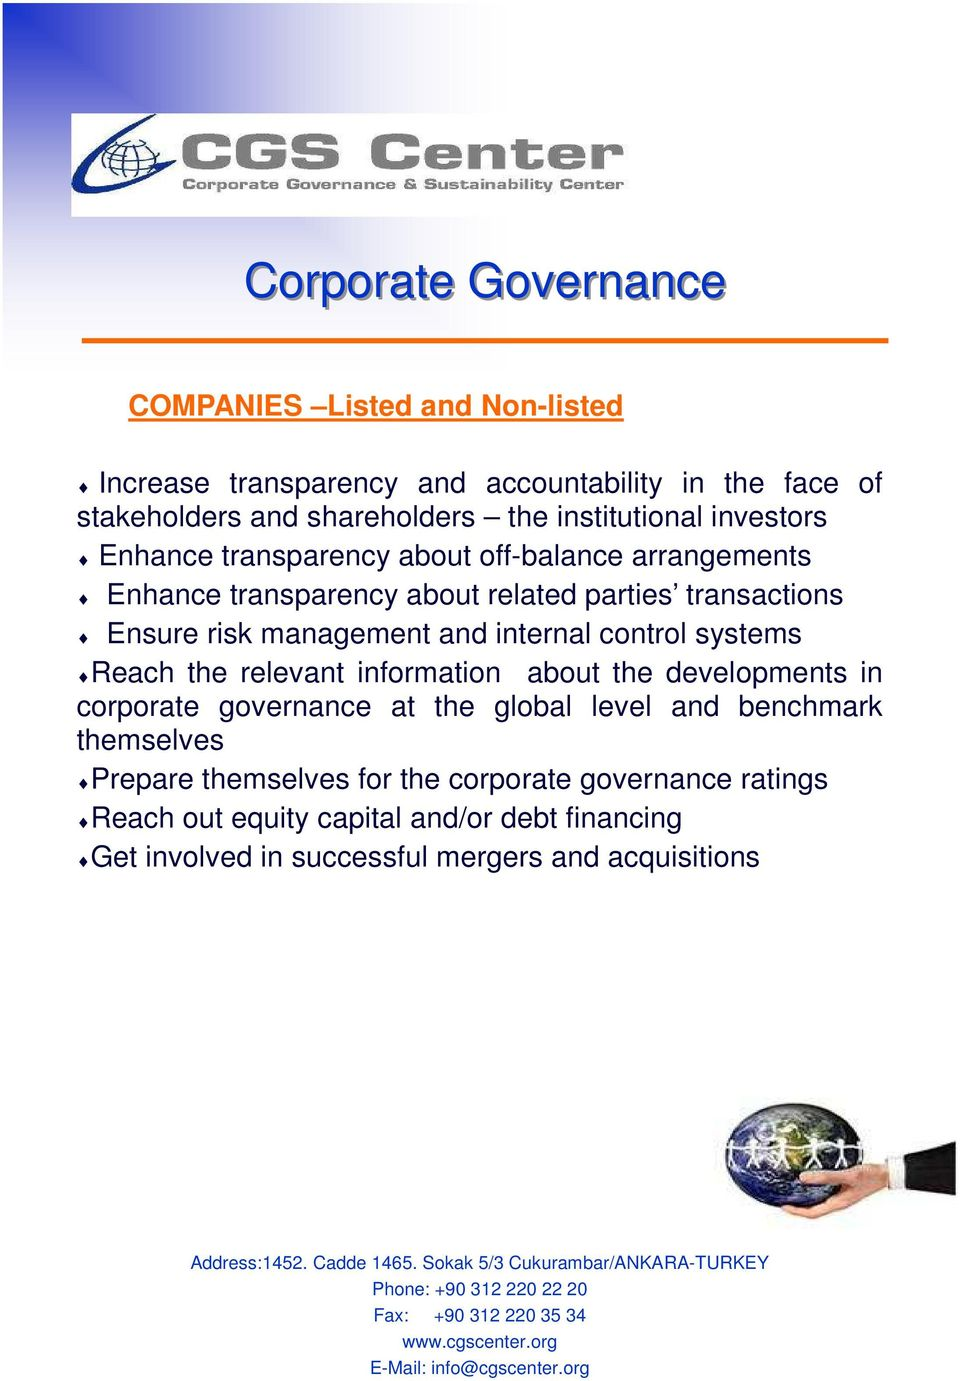 developments in corporate governance at the global level and benchmark themselves Prepare themselves for the corporate governance ratings Reach out equity capital and/or debt financing Get